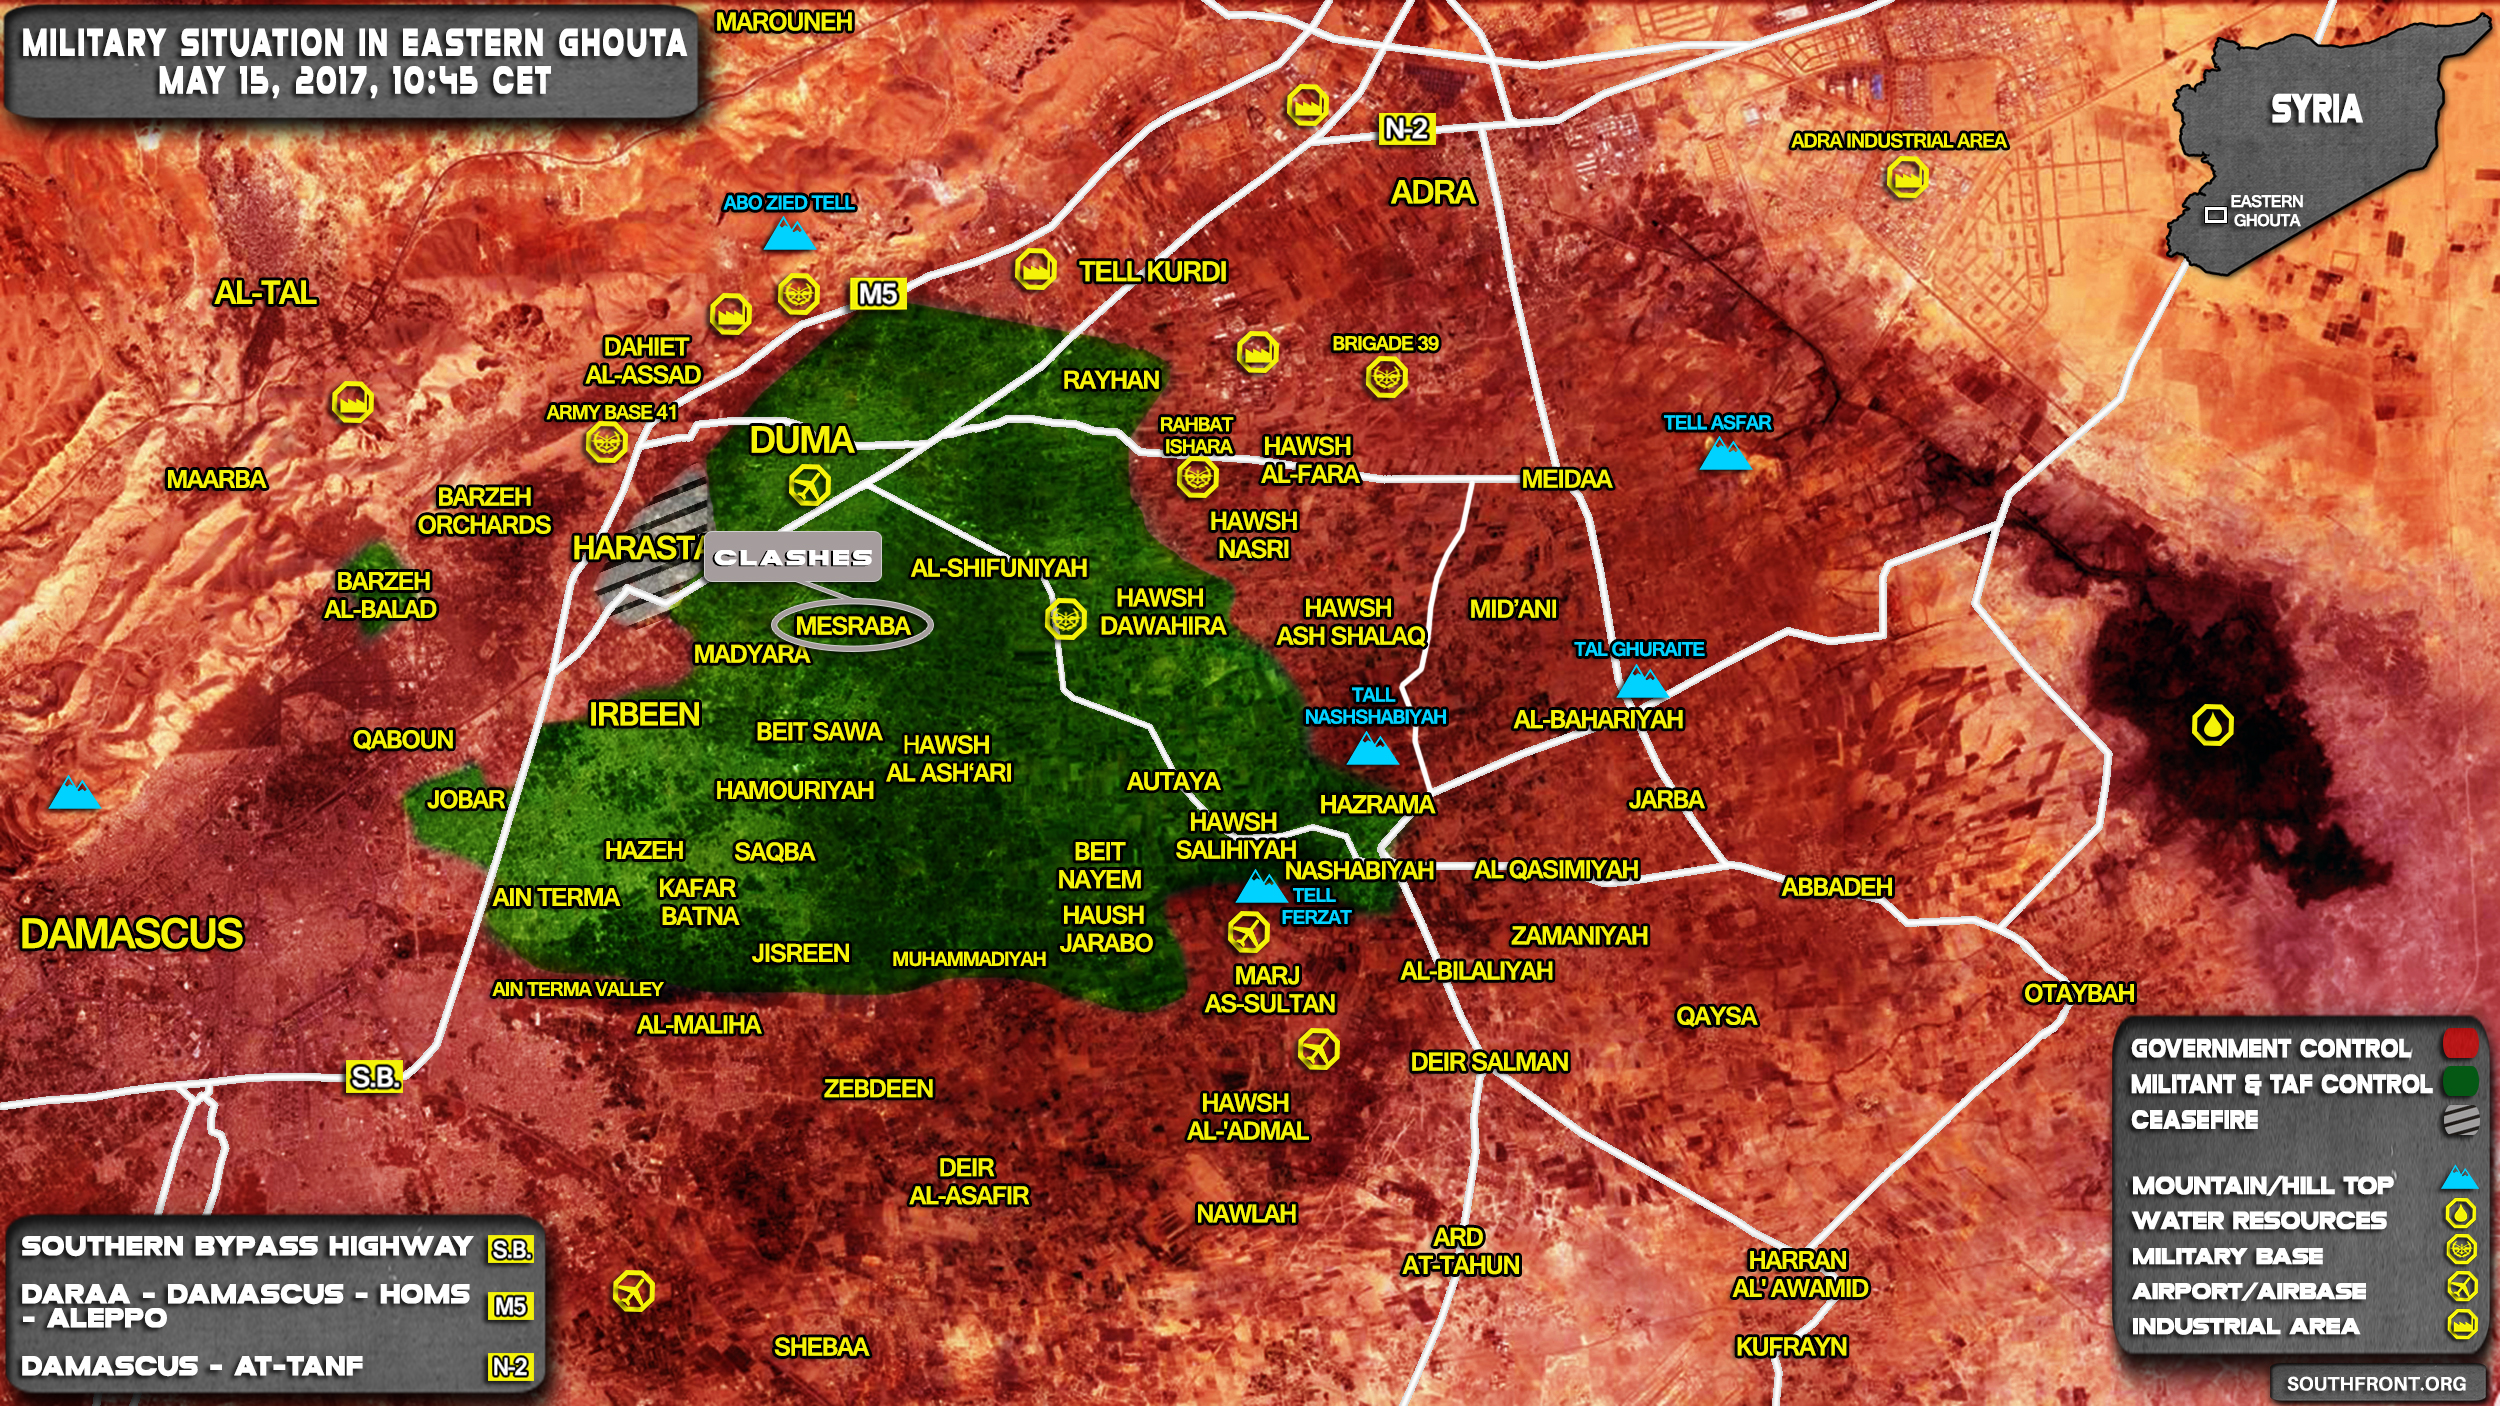 Military Situation In Eastern Damascus After Liberation Of Qaboun And Tishreen